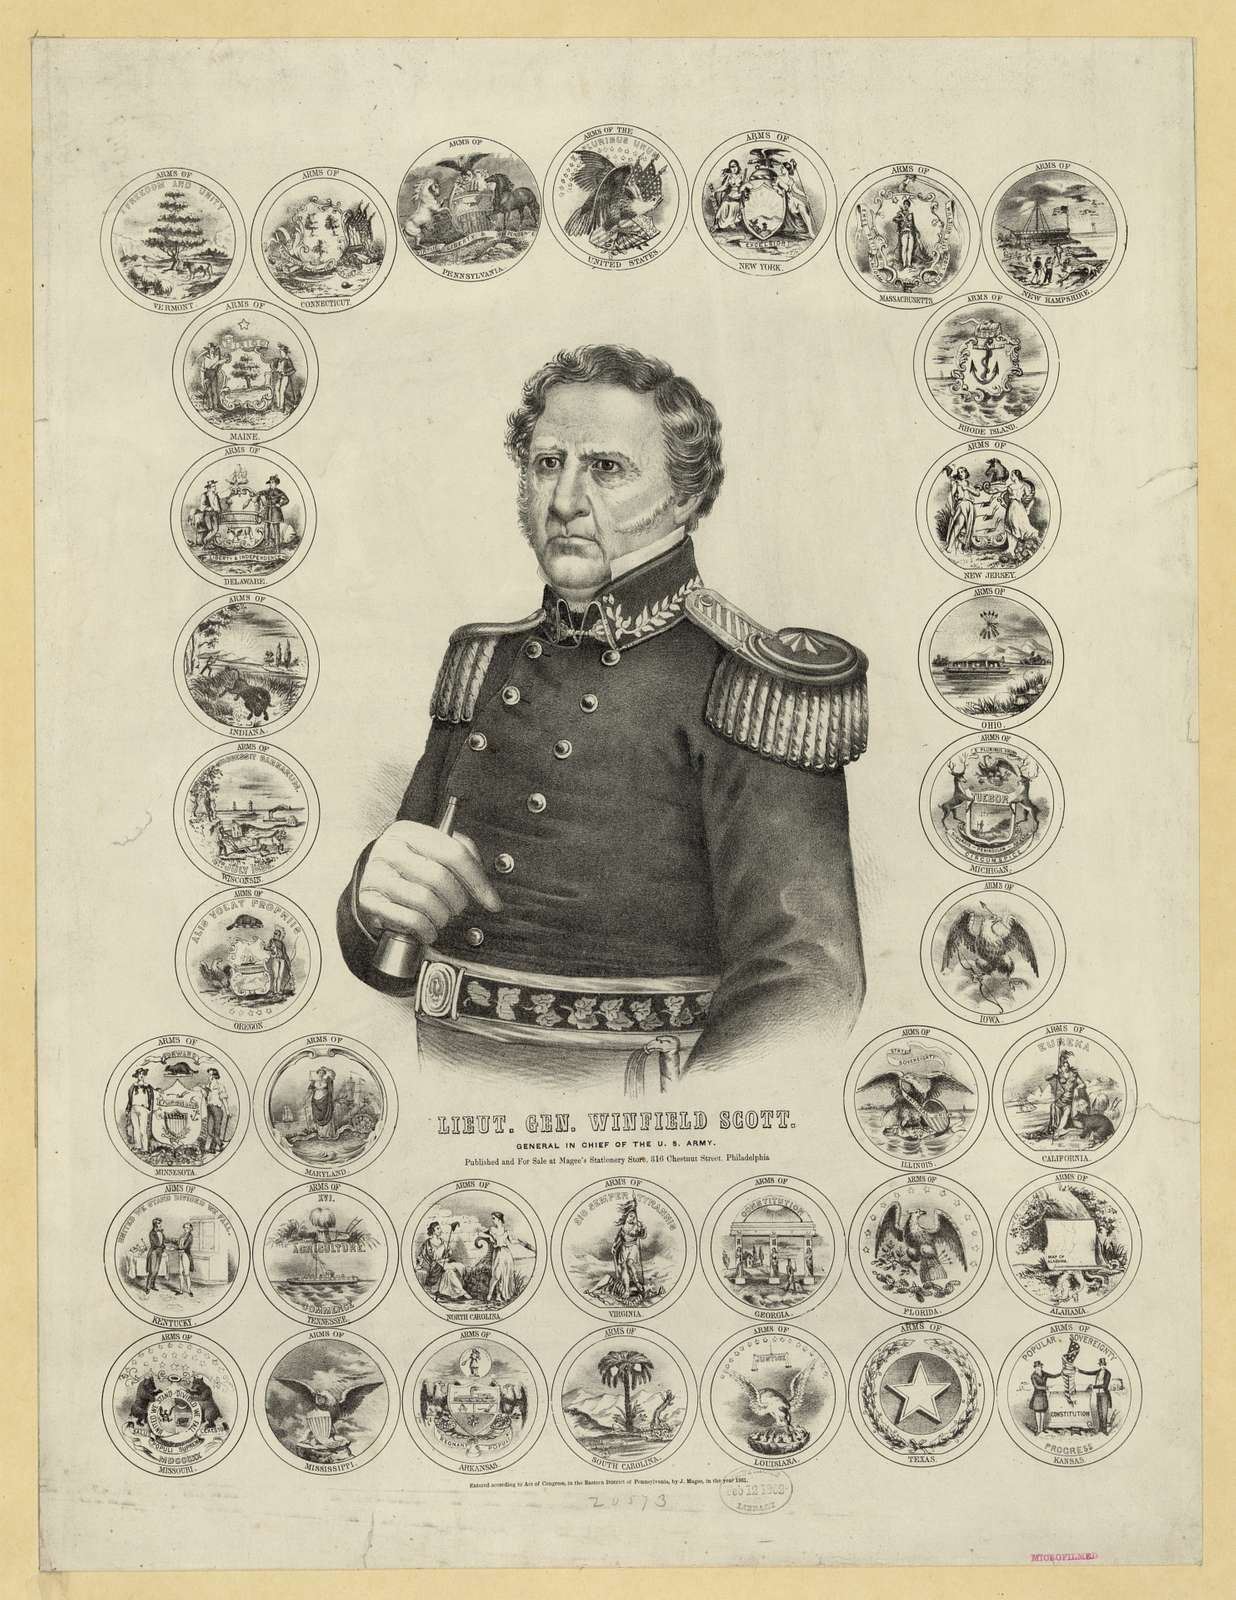 Lieut. Gen. Winfield Scott. General in Chief of the U.S. Army